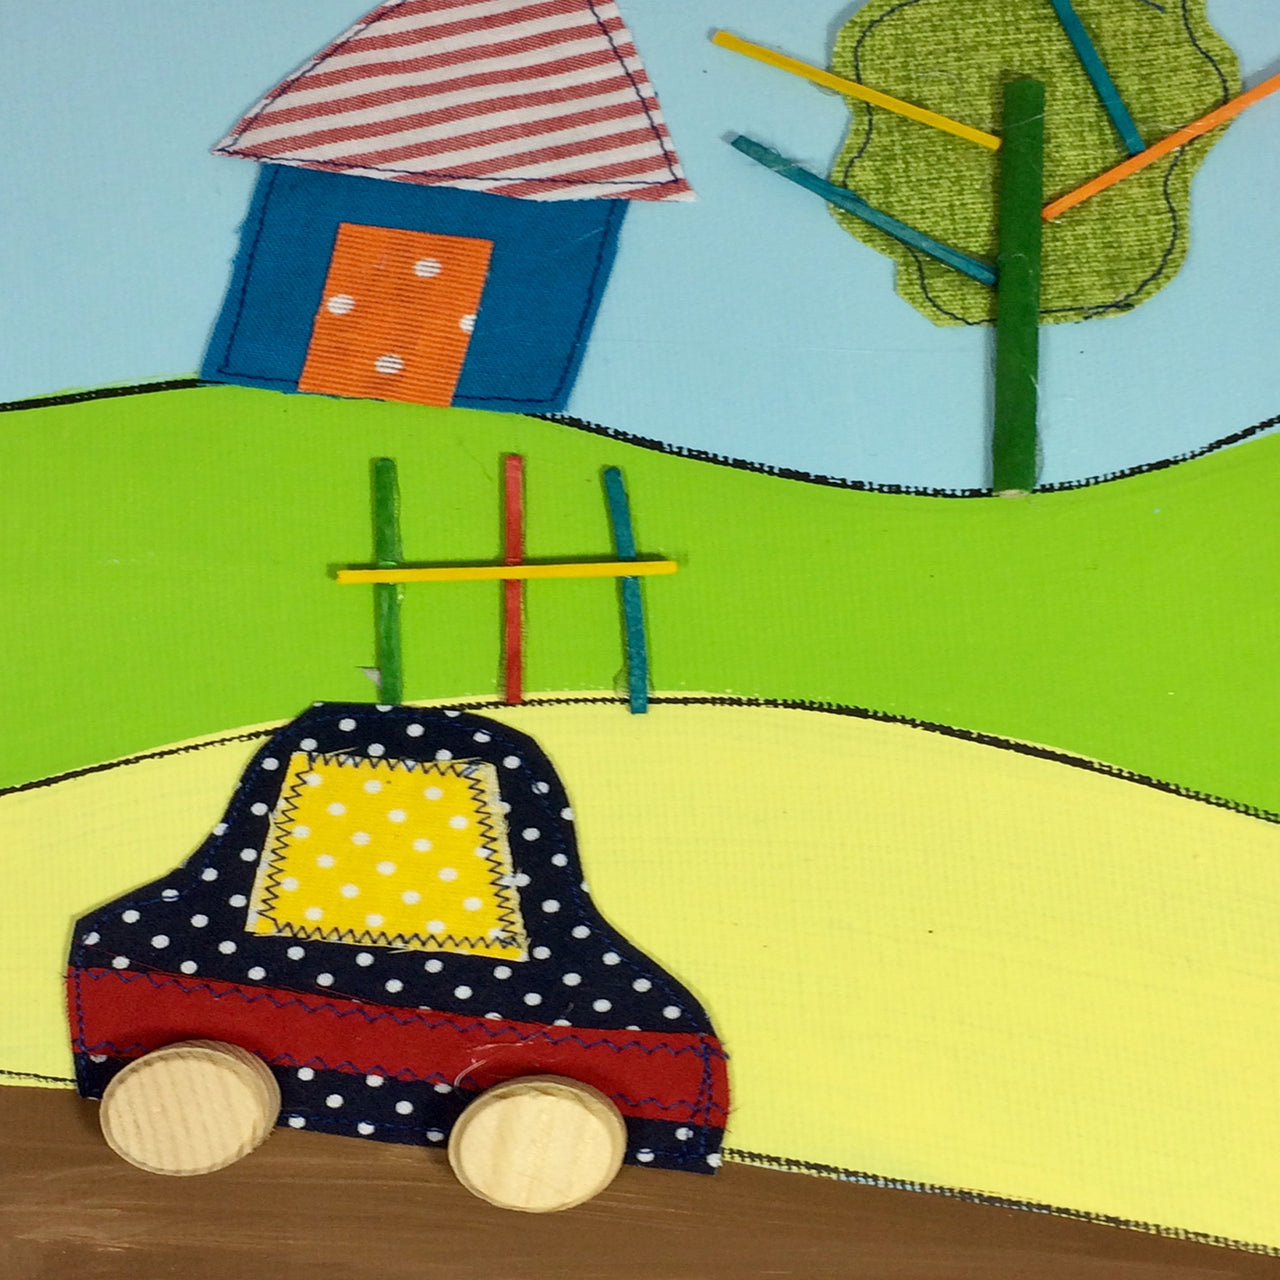 Picture of a car in the countryside on a painted canvas with layered fabrics to provide a three-dimensional effect.